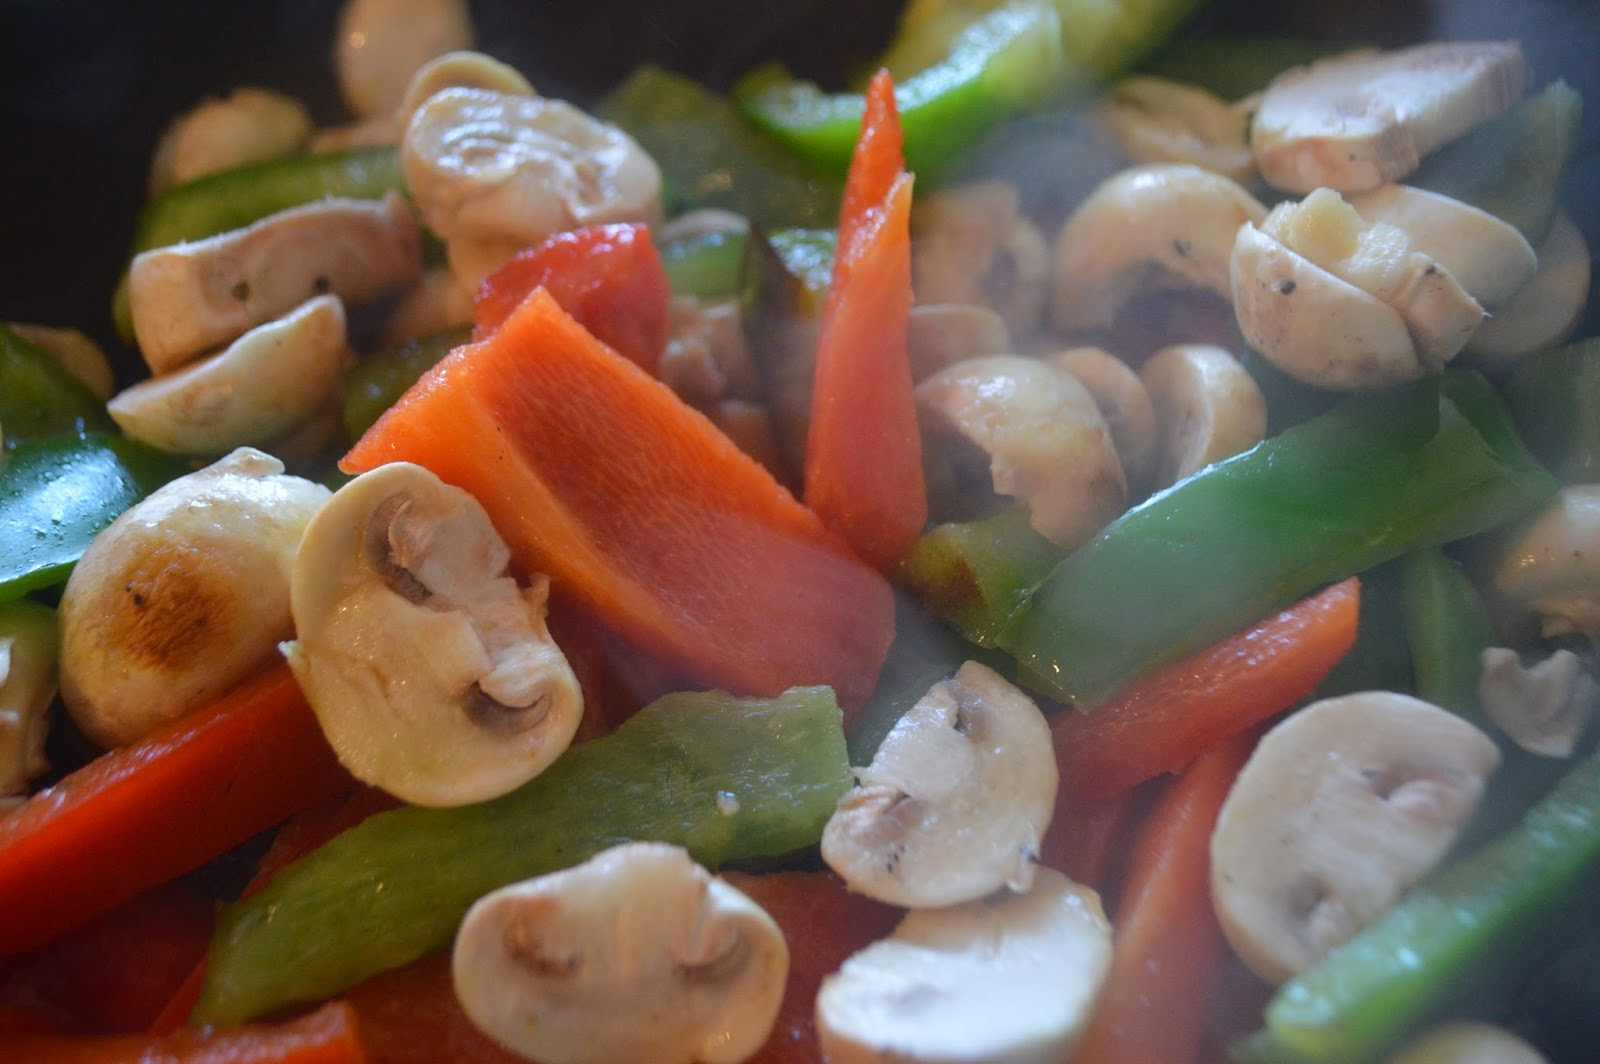 Heinz, Asda, Barbecue Chicken, Recipe, Food, healthy, #shop , mushroom, pepper, stir fry